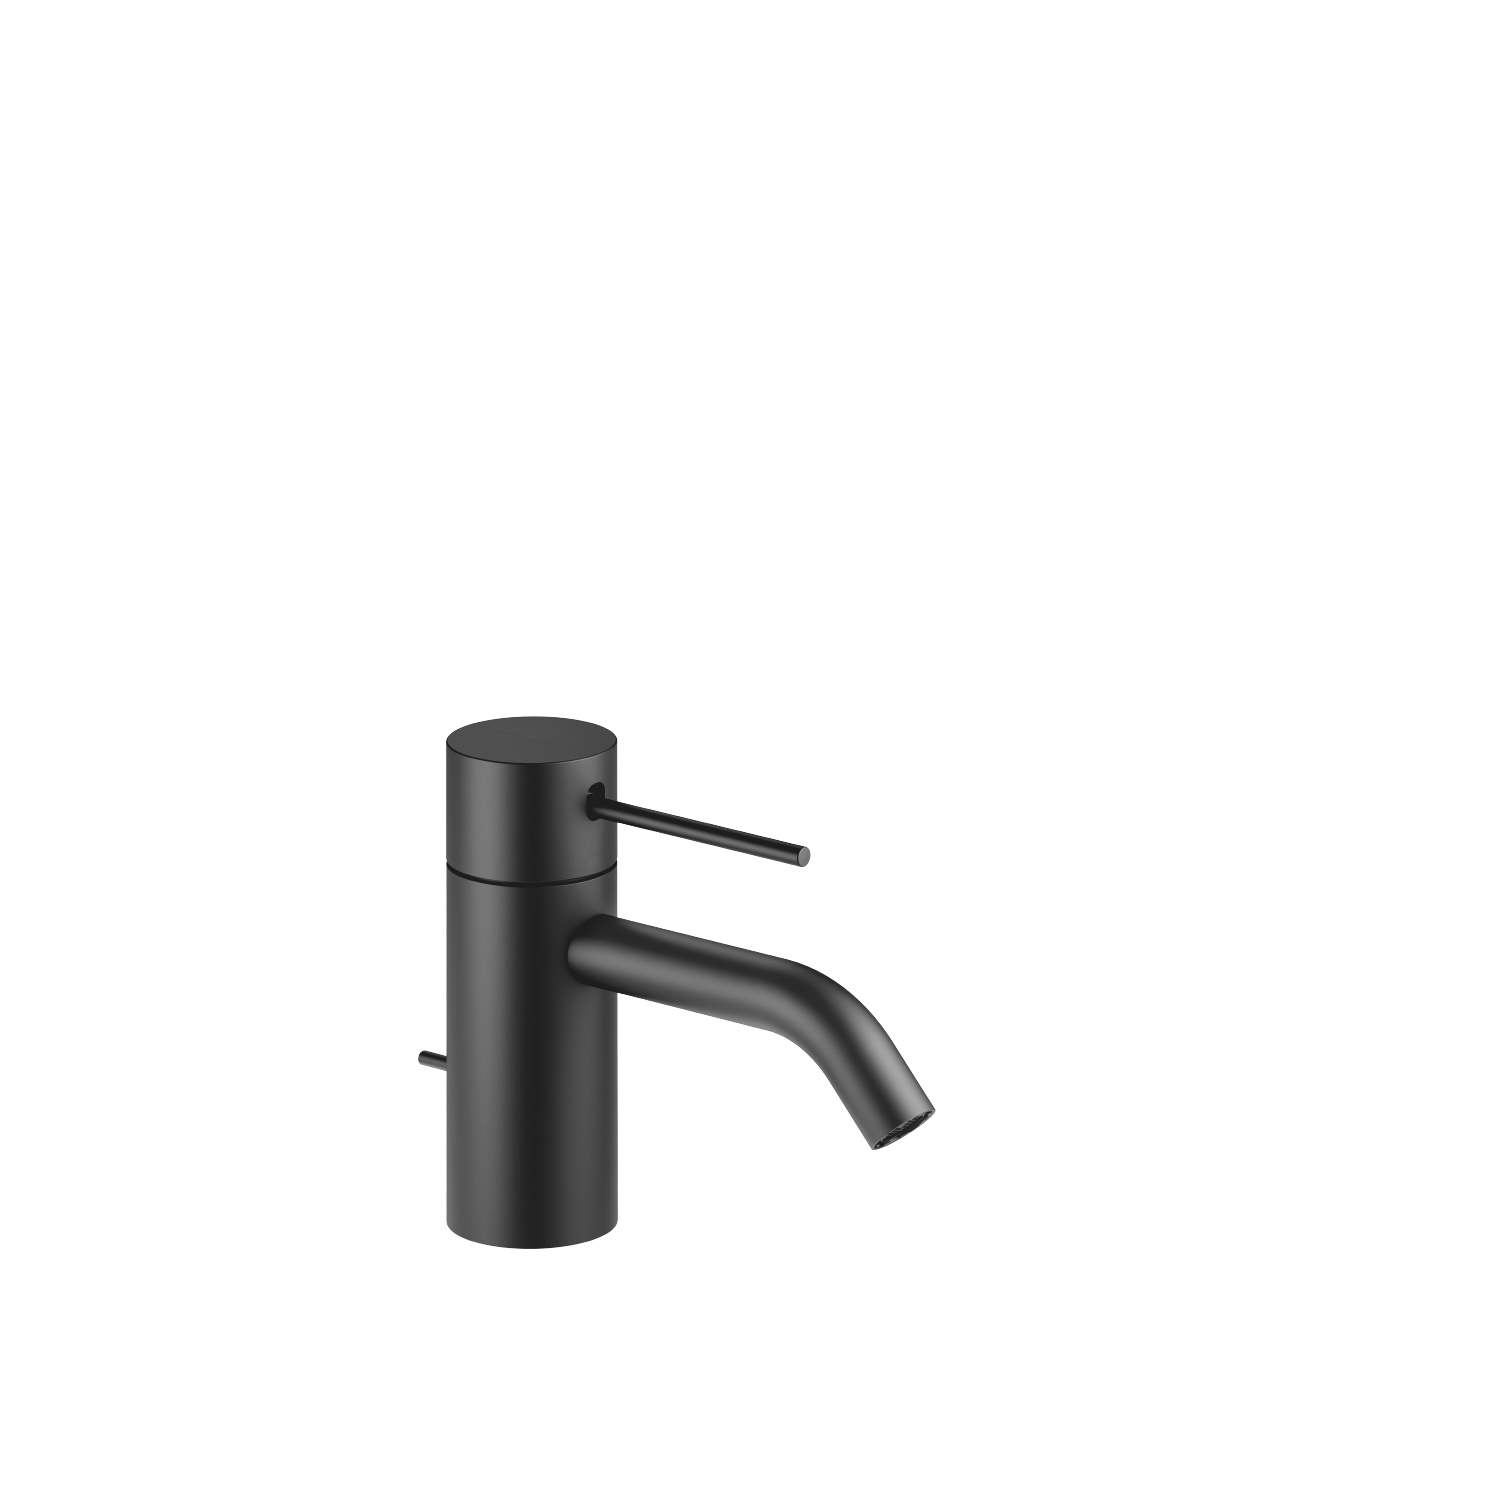 META SLIM Single-lever basin mixer with pop-up waste - matt black - 33 501 662-33